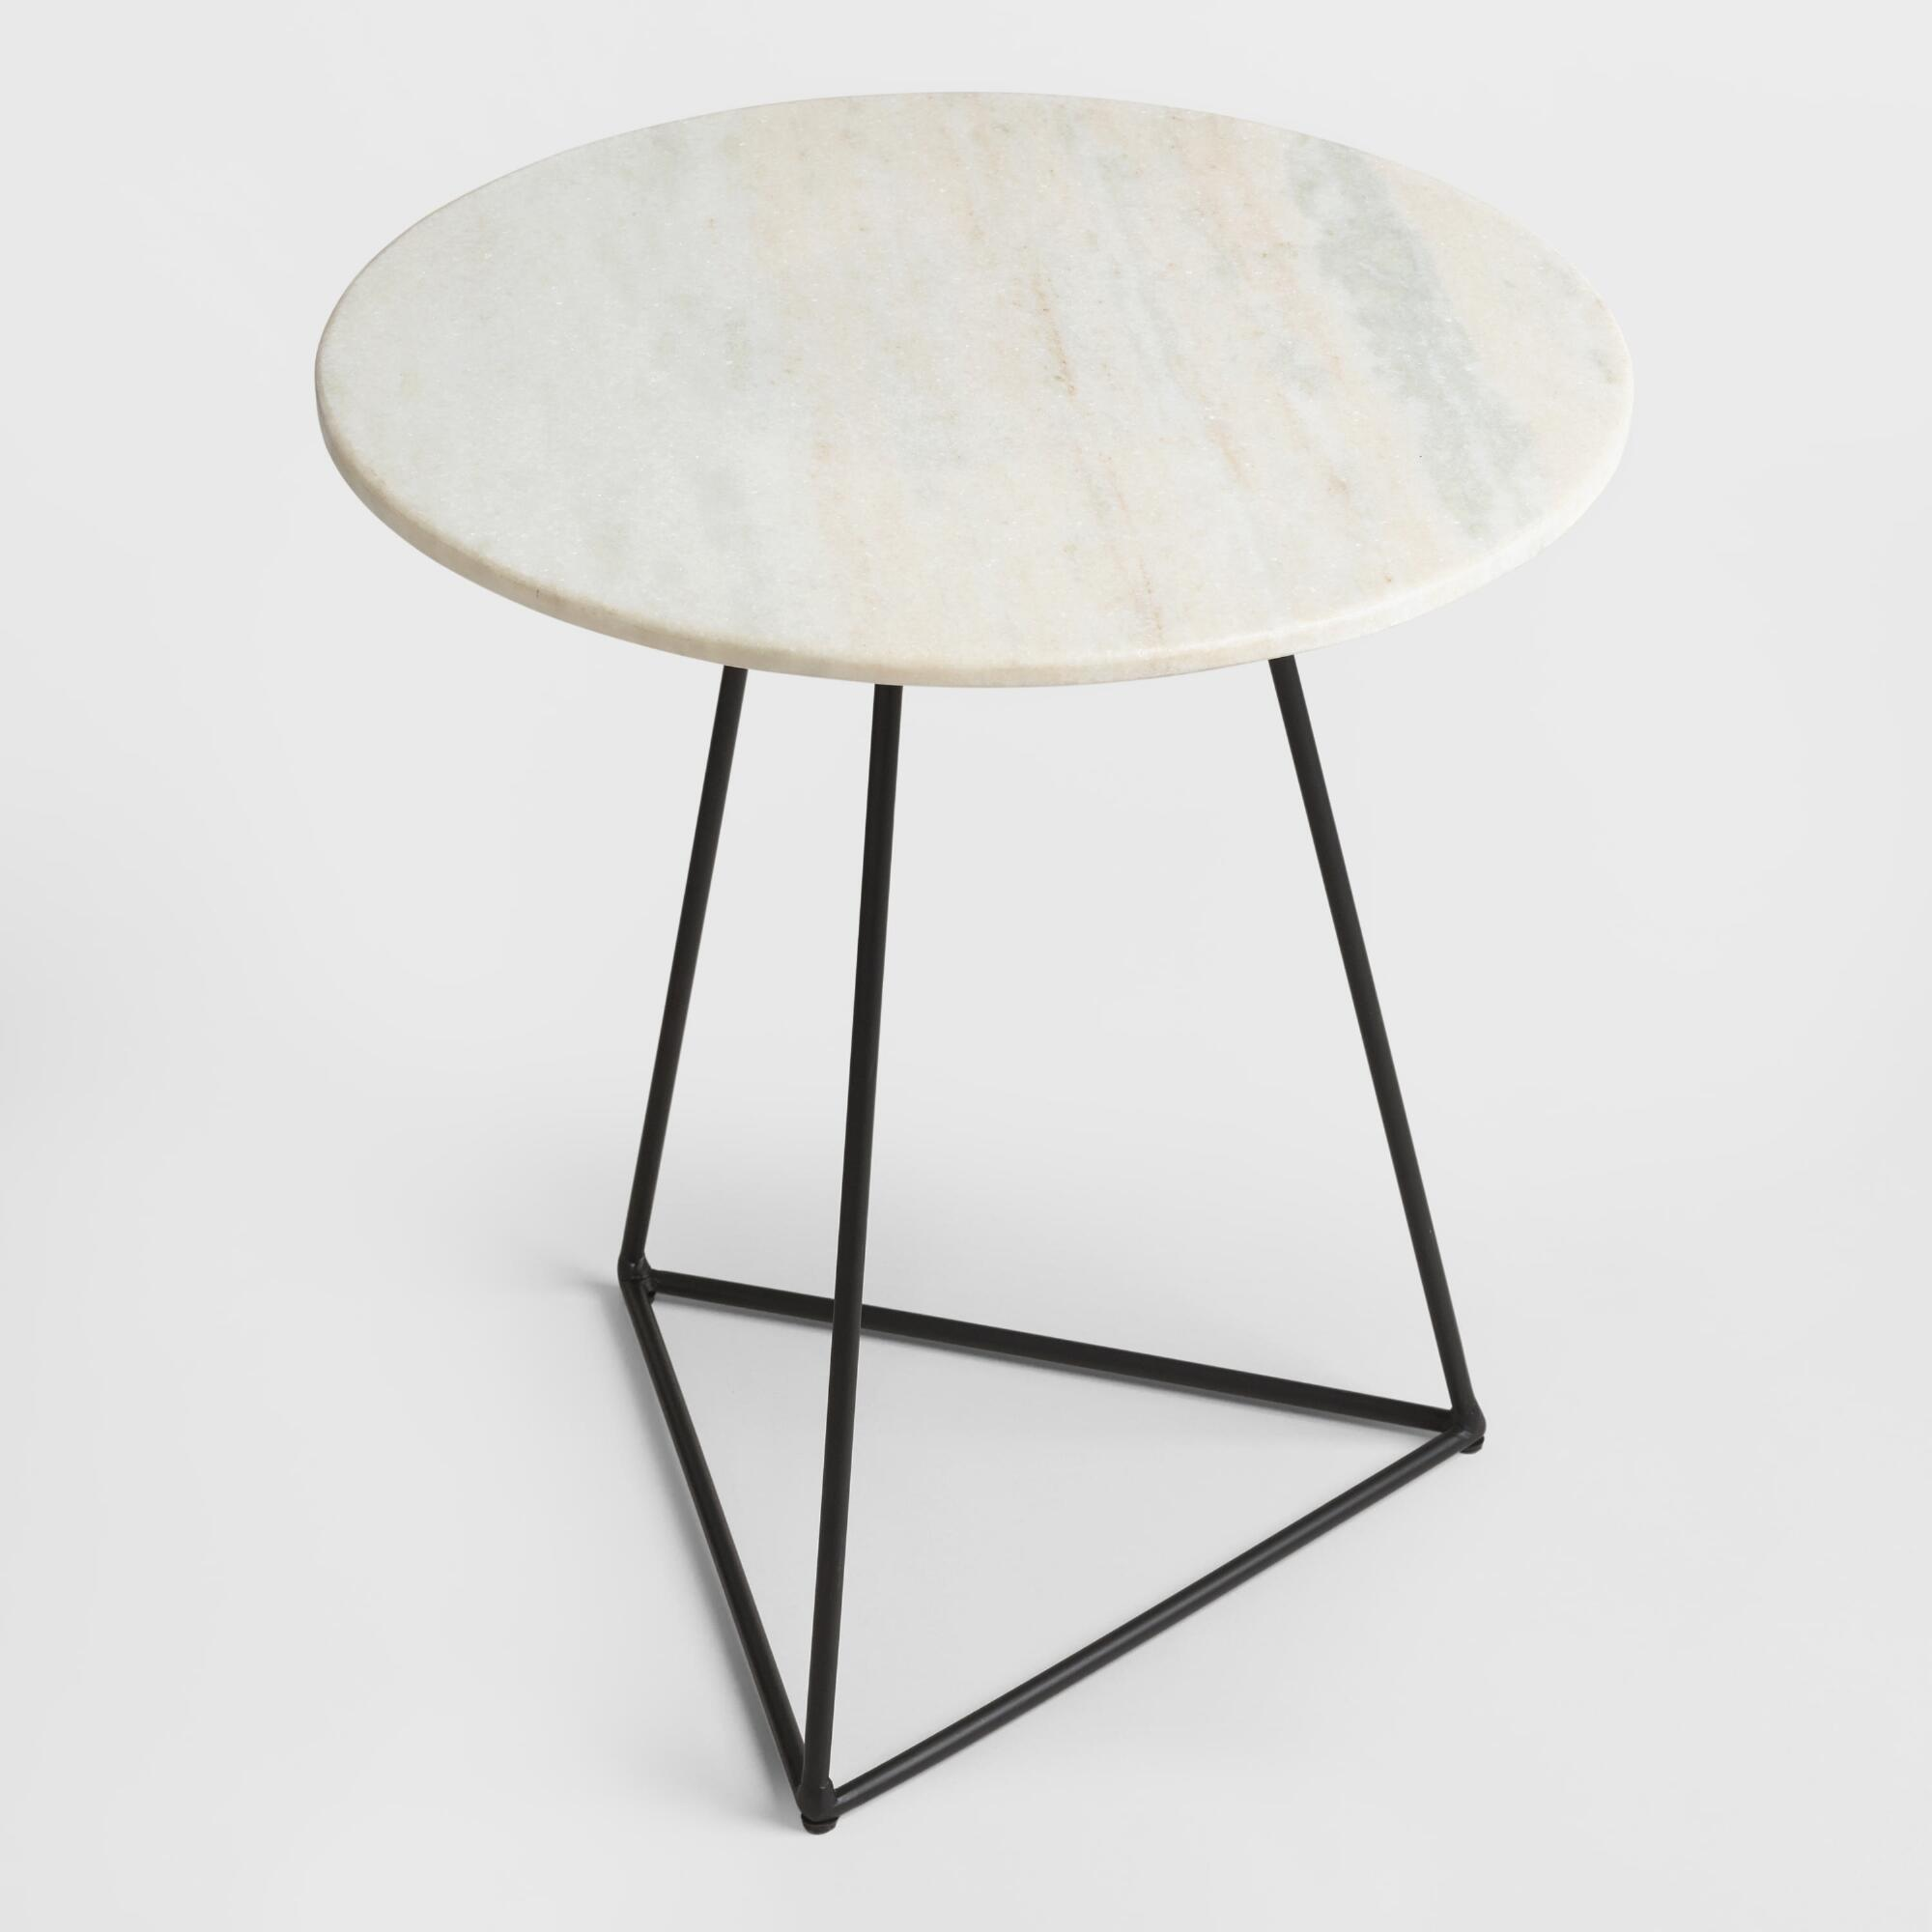 white marble and metal round accent table world market products black half coffee frog drum silver lamps target dressers mirrored furniture trestle pedestal dining lucite room